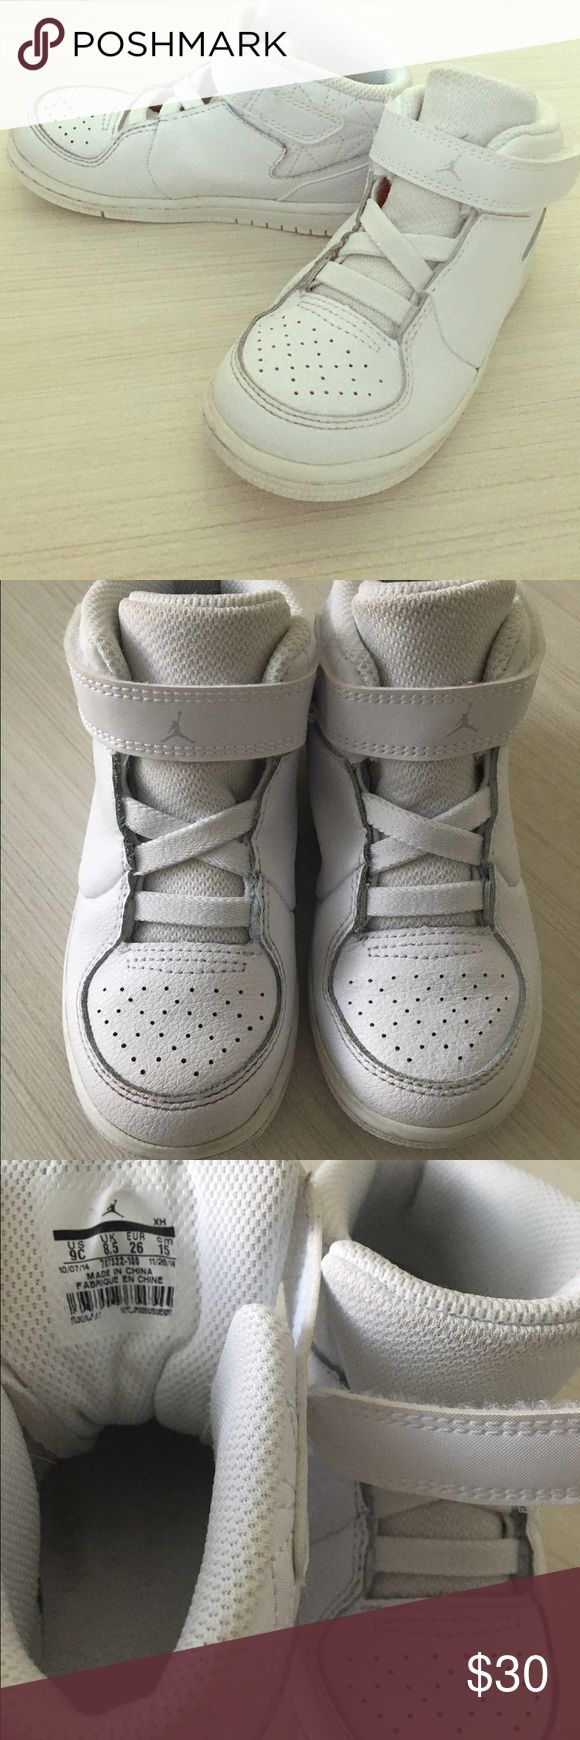 JORDAN 1 FLIGHT 3 - Leather and nubuck with a fused lateral collar and quilted medial collar for all day comfort Jordan Shoes Sneakers